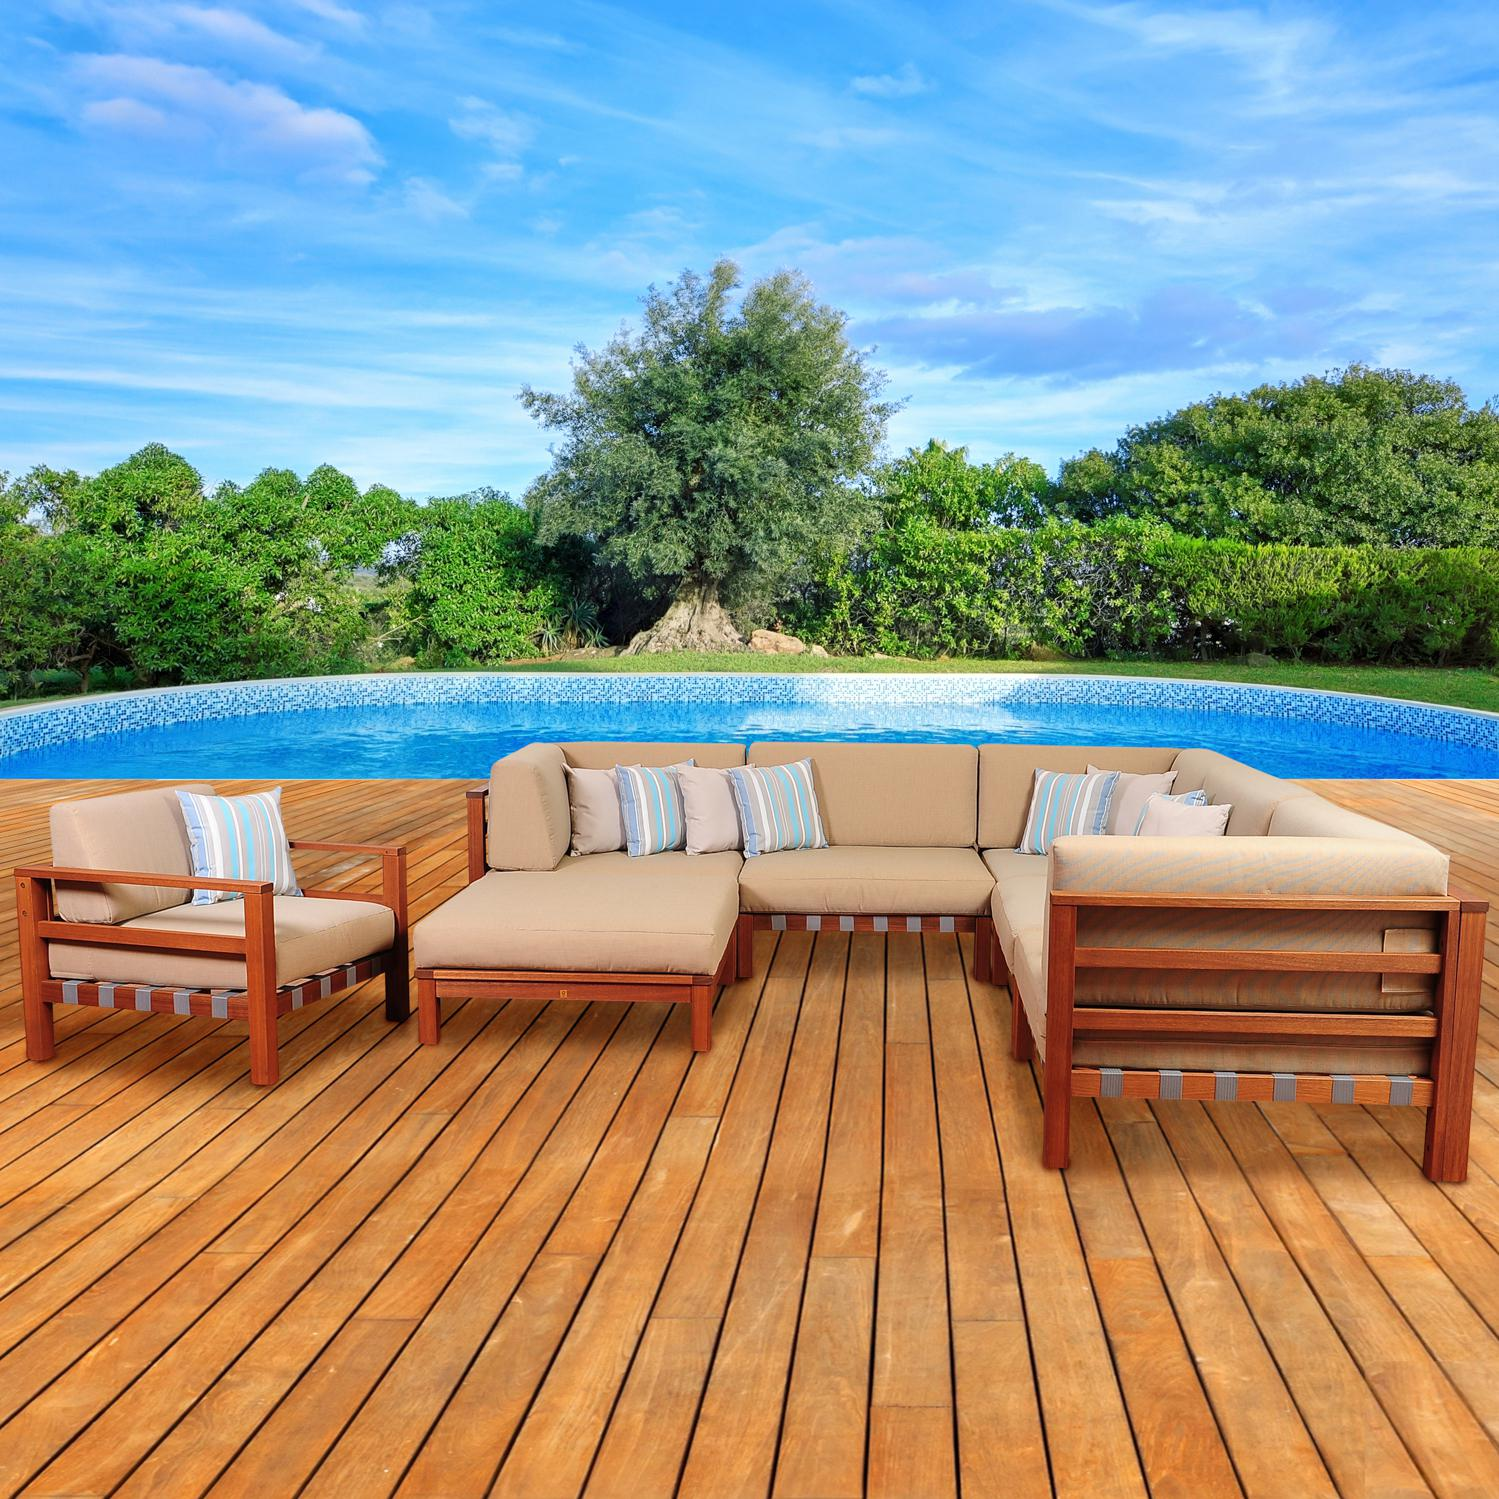 Picture of Amazonia Derbyshire 5-Person Eucalyptus Patio Sectional Set With Club Chair By Jamie Durie